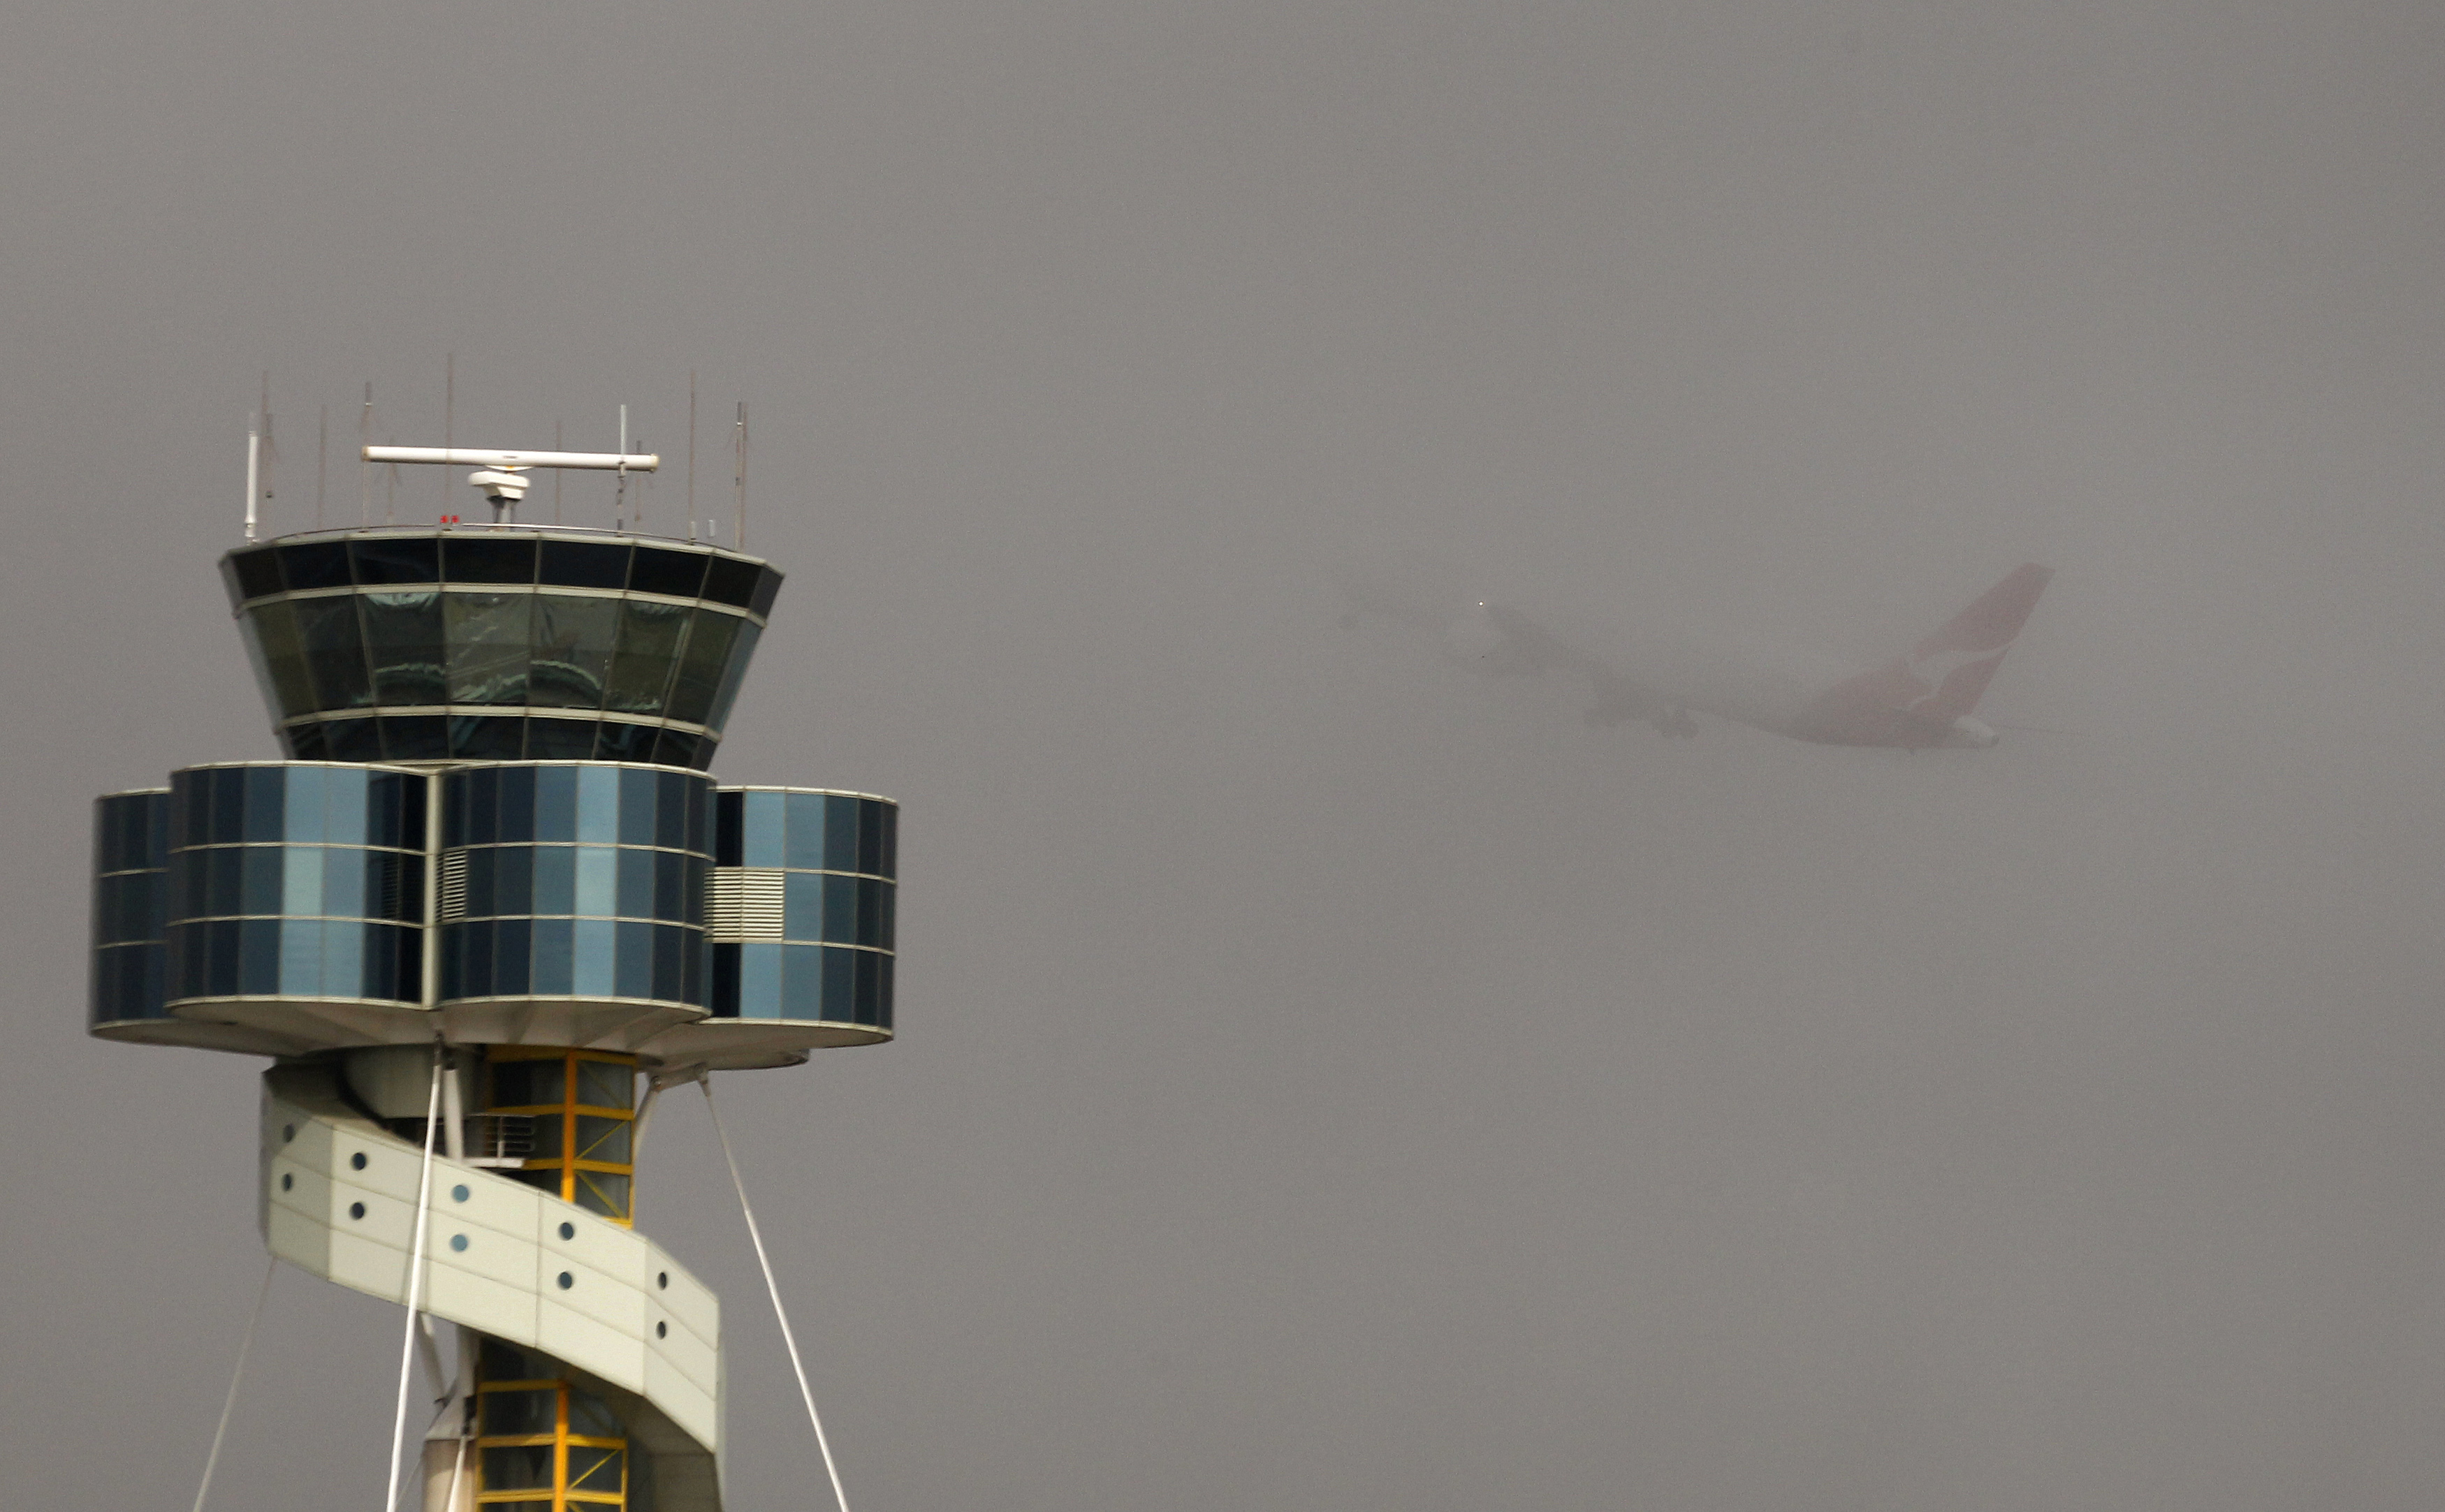 A Qantas plane takes off from Sydney airport amidst thick fog on May 29, 2013.